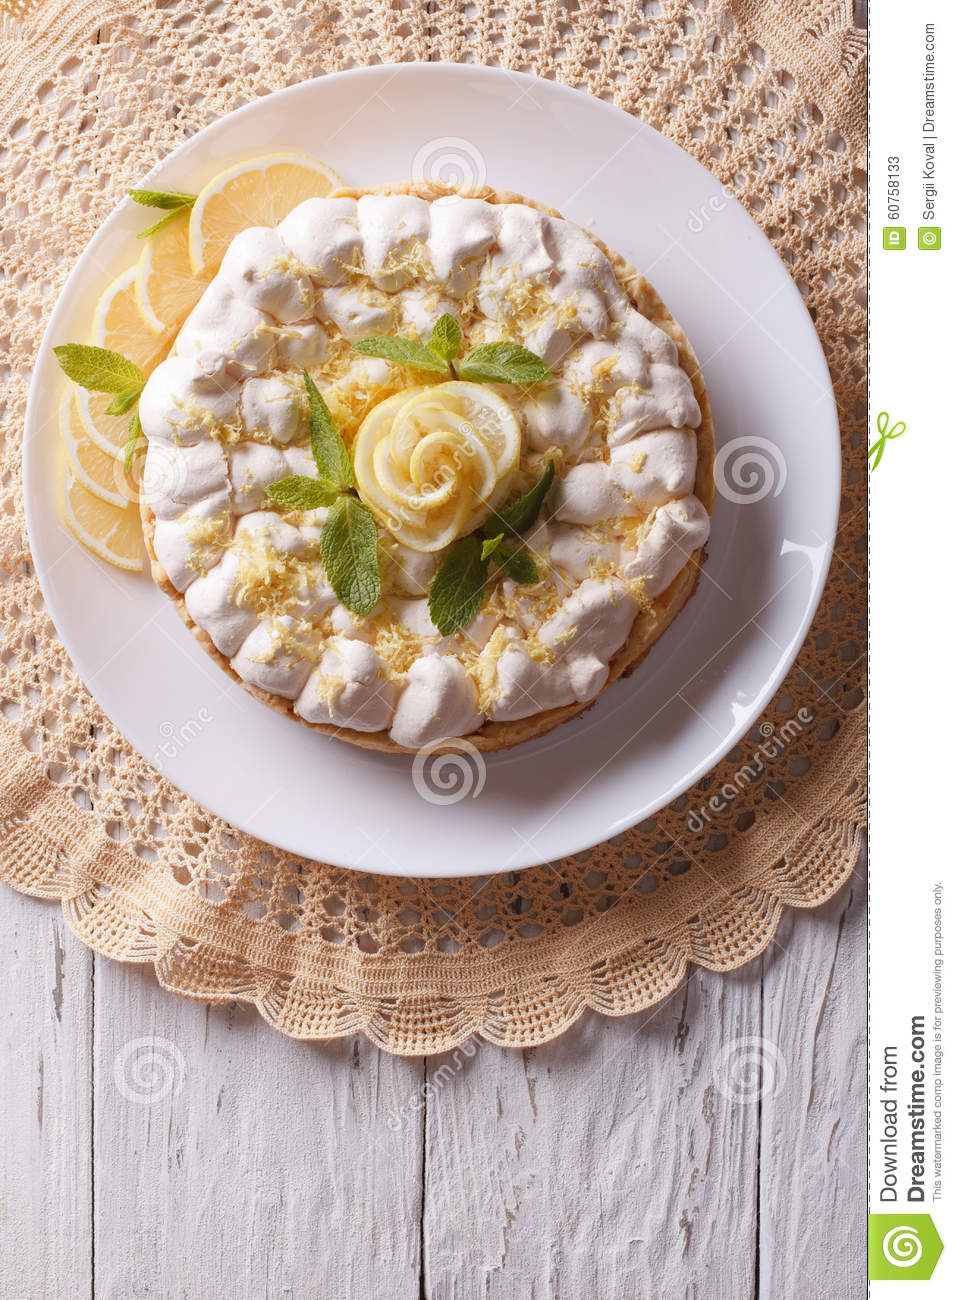 Cake Clipart Top View : Lemon Meringue Pie On The Table. Vertical Top View Stock ...